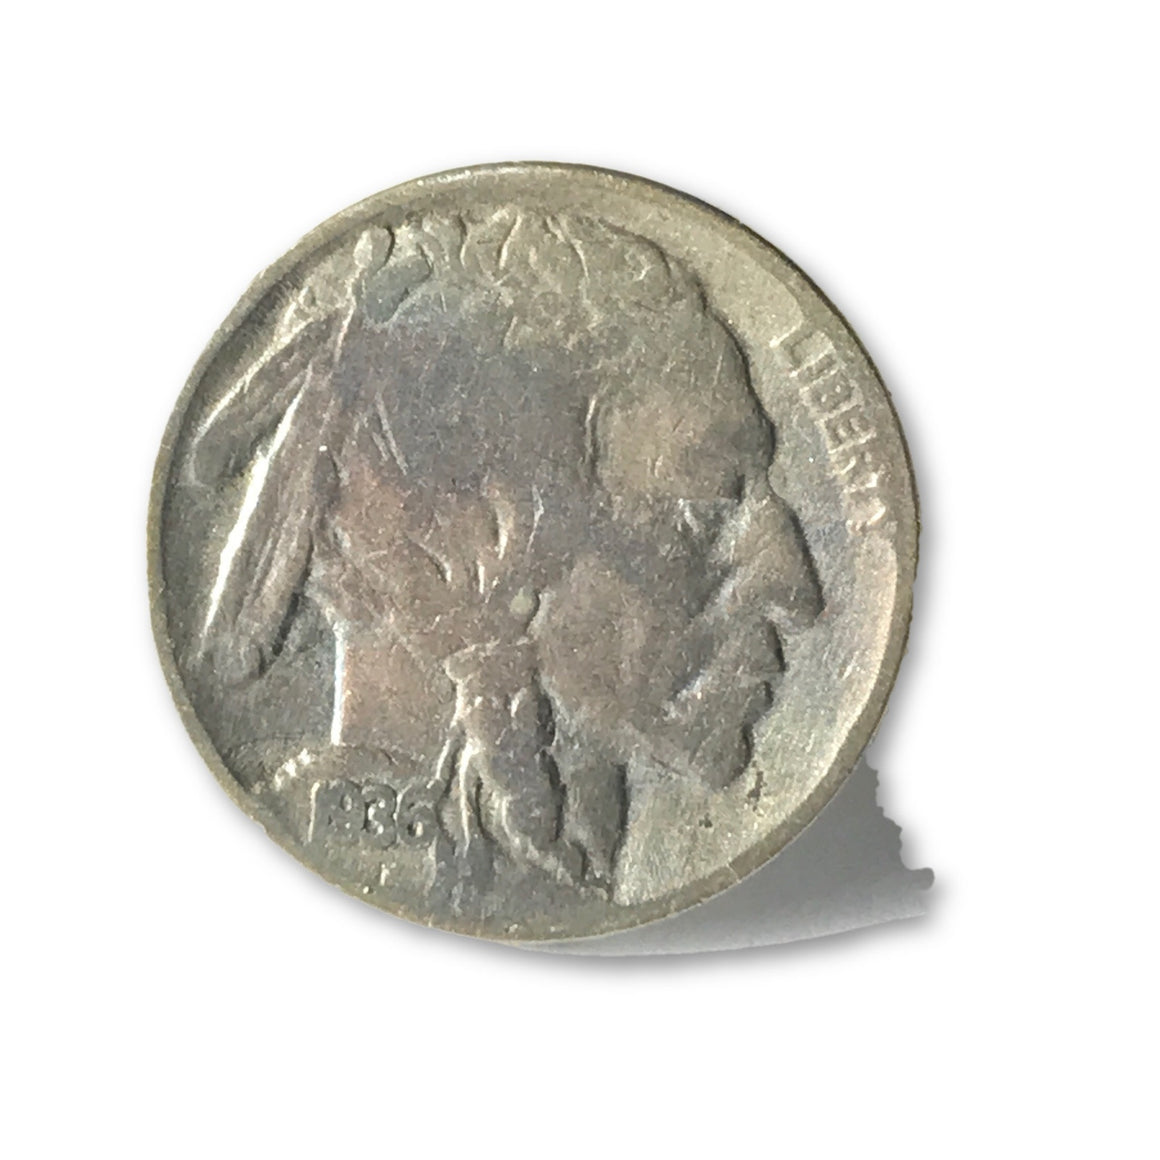 1936 Buffalo Nickel full date